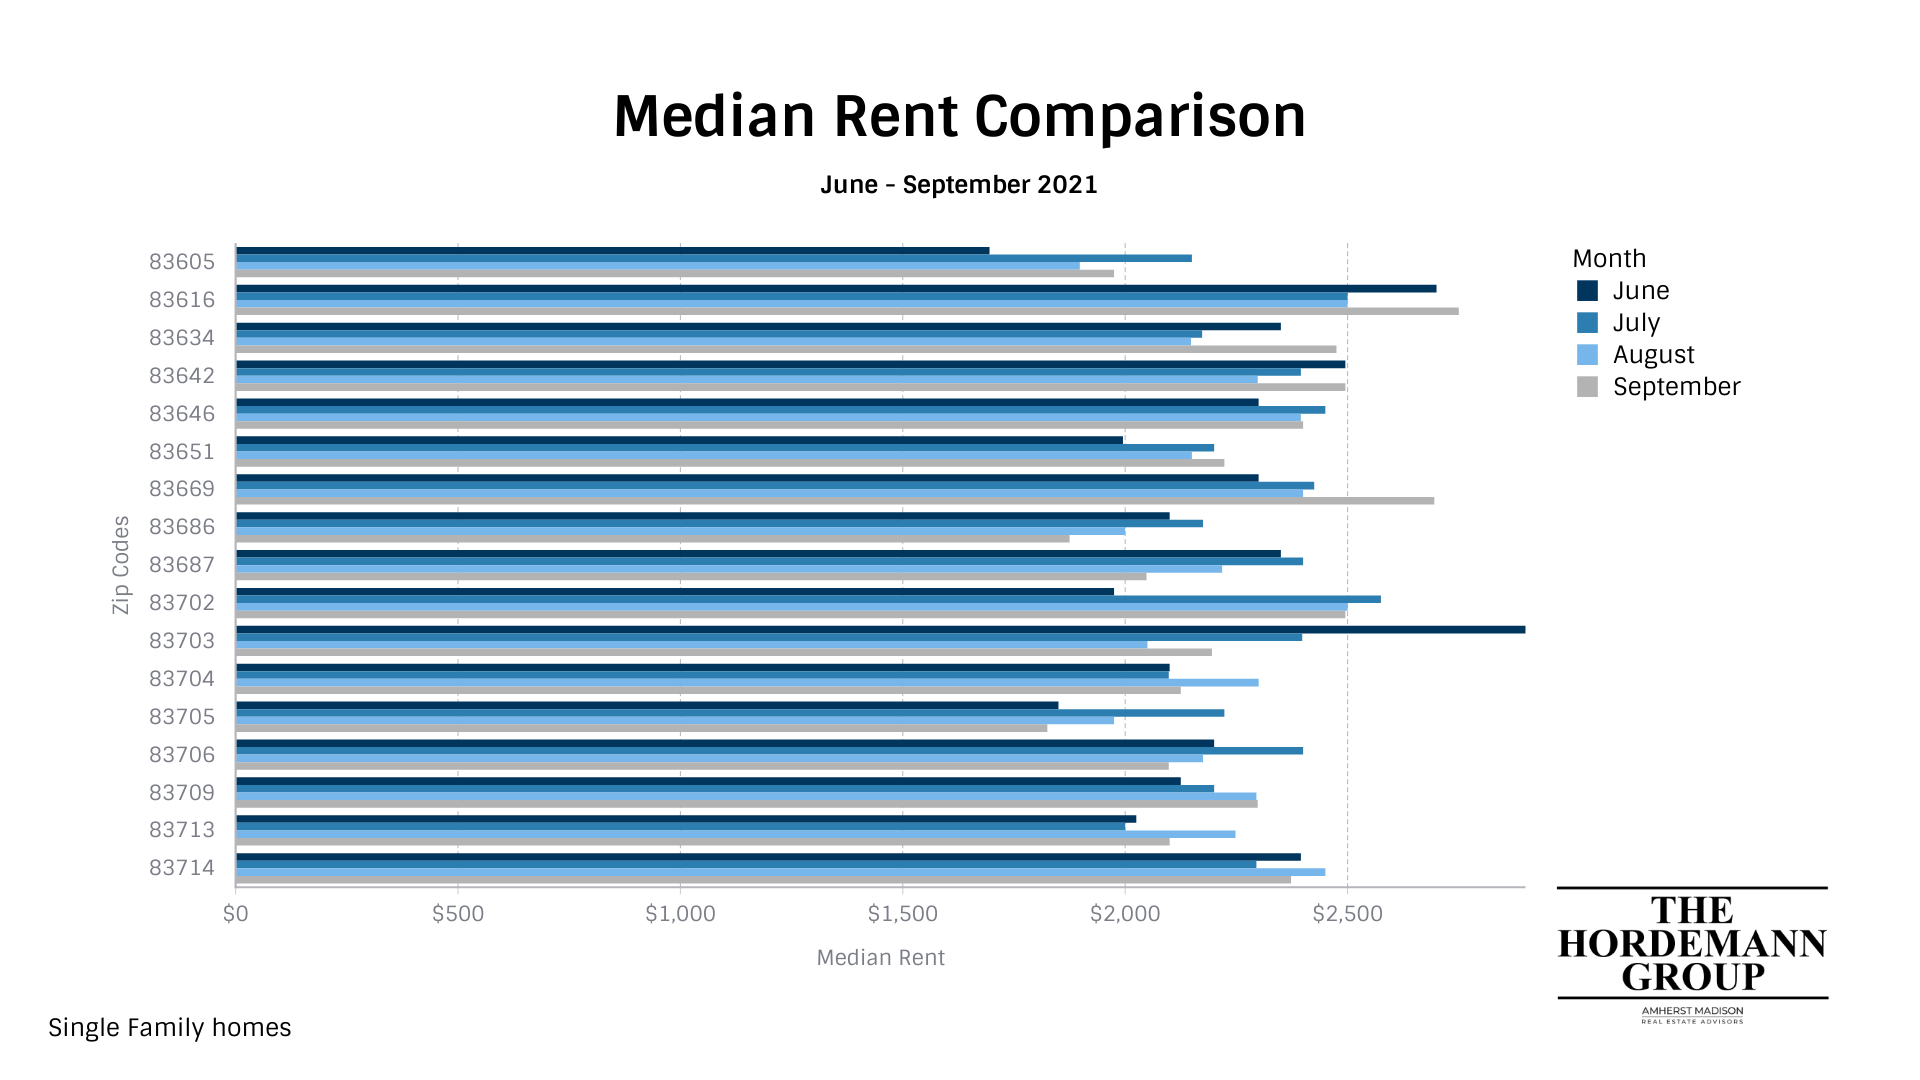 The rent in Star, Idaho has continued to rise through the summer